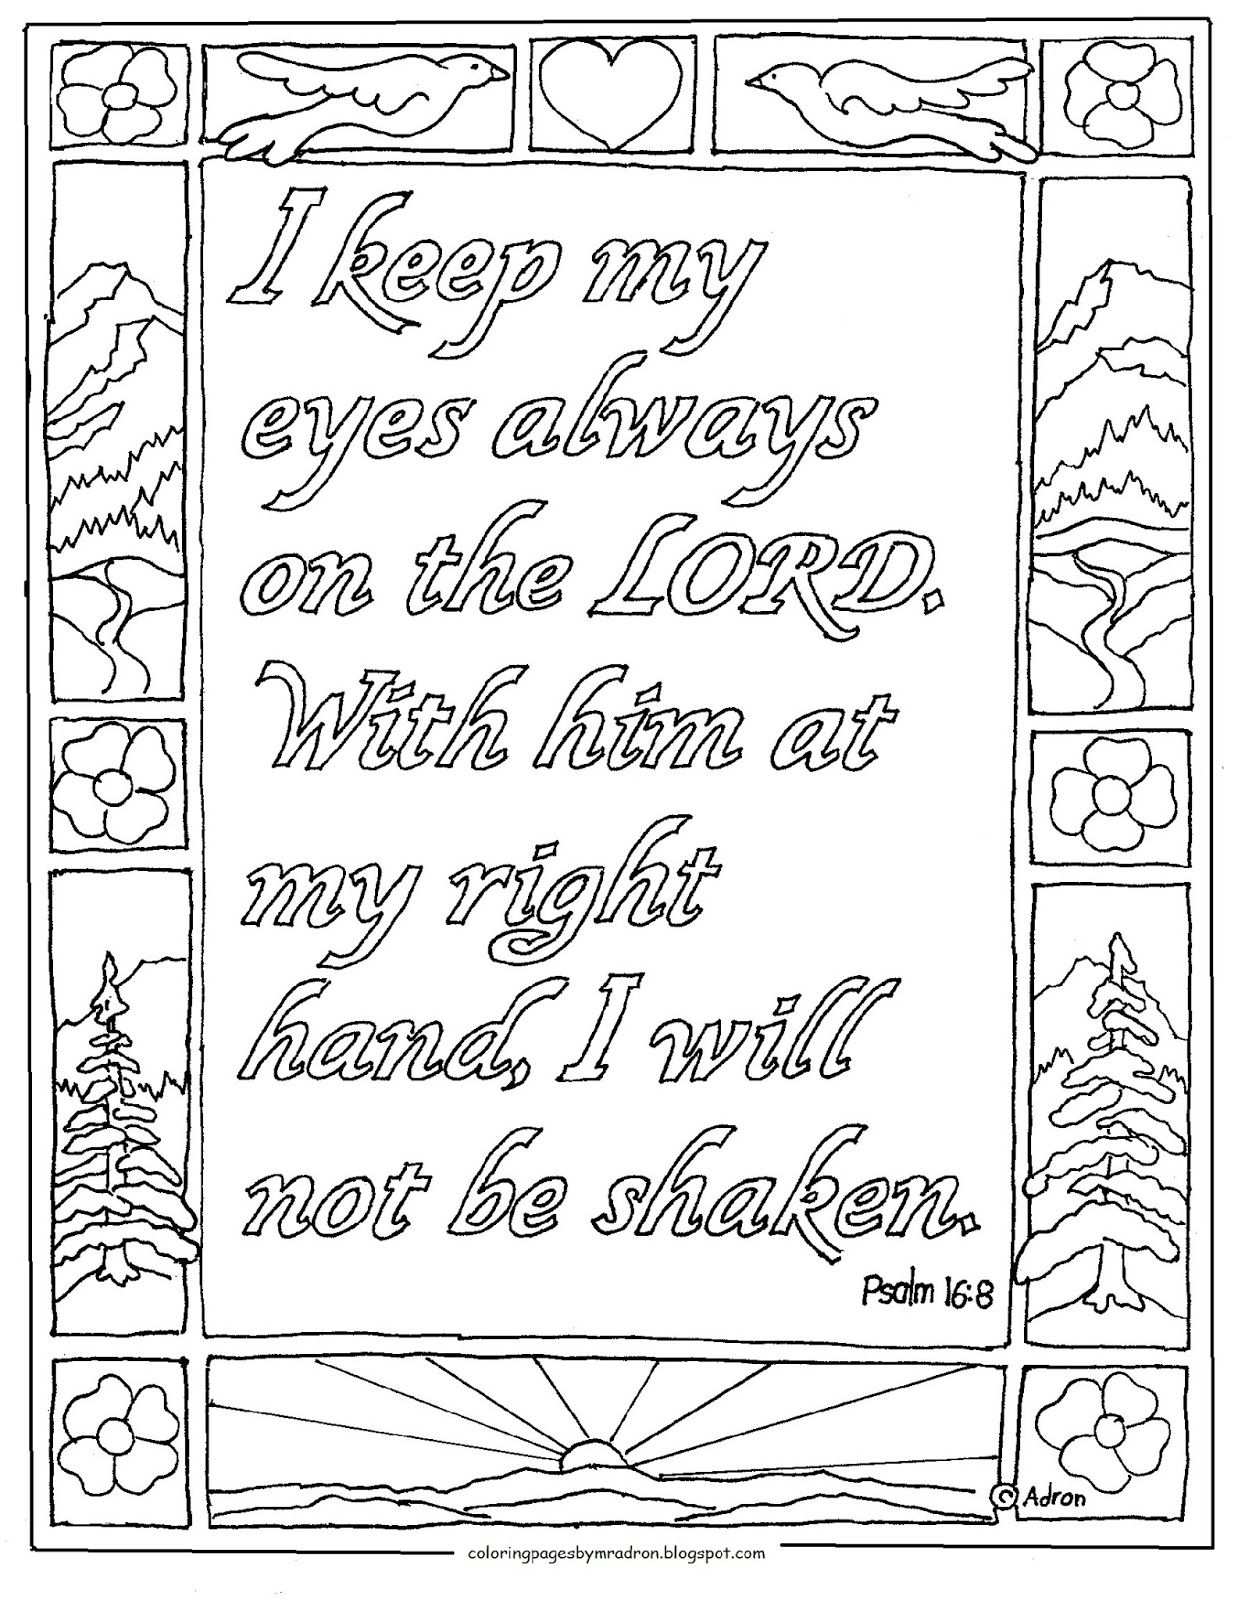 Psalm 16:8 Printable Coloring Page. This printable